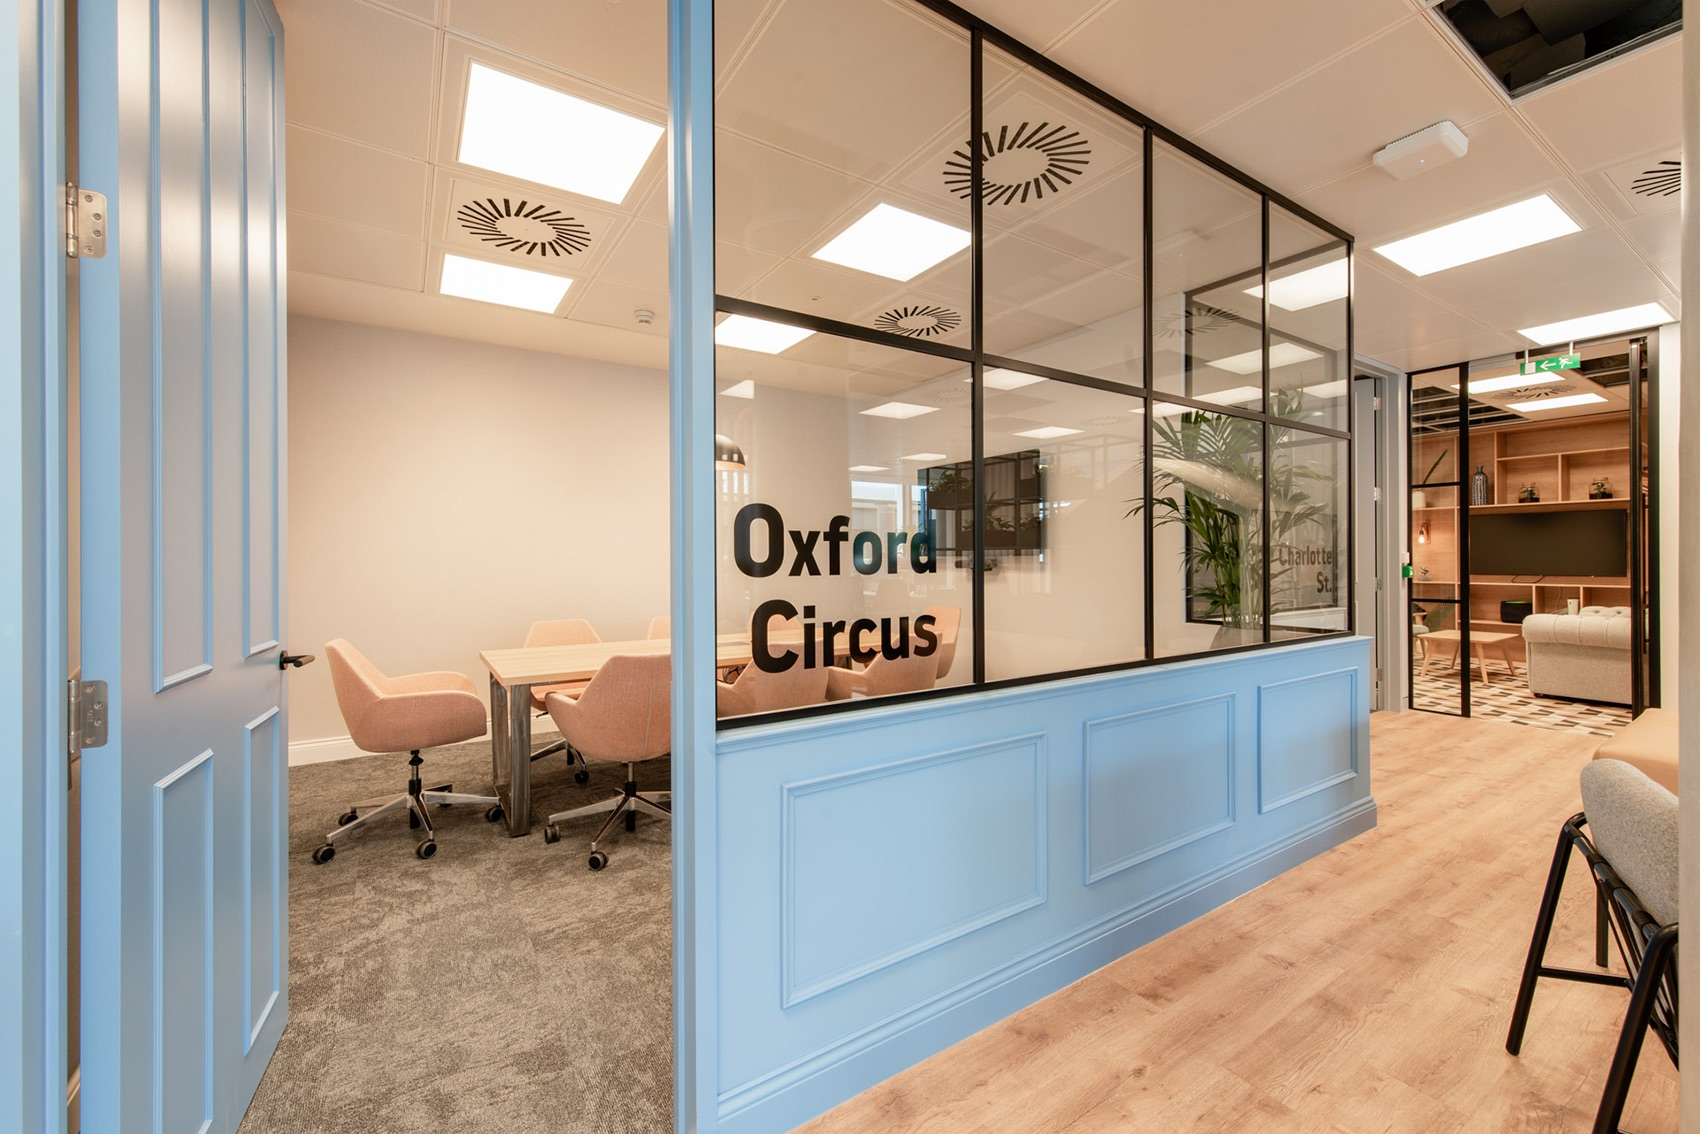 tomtom-london-office-6